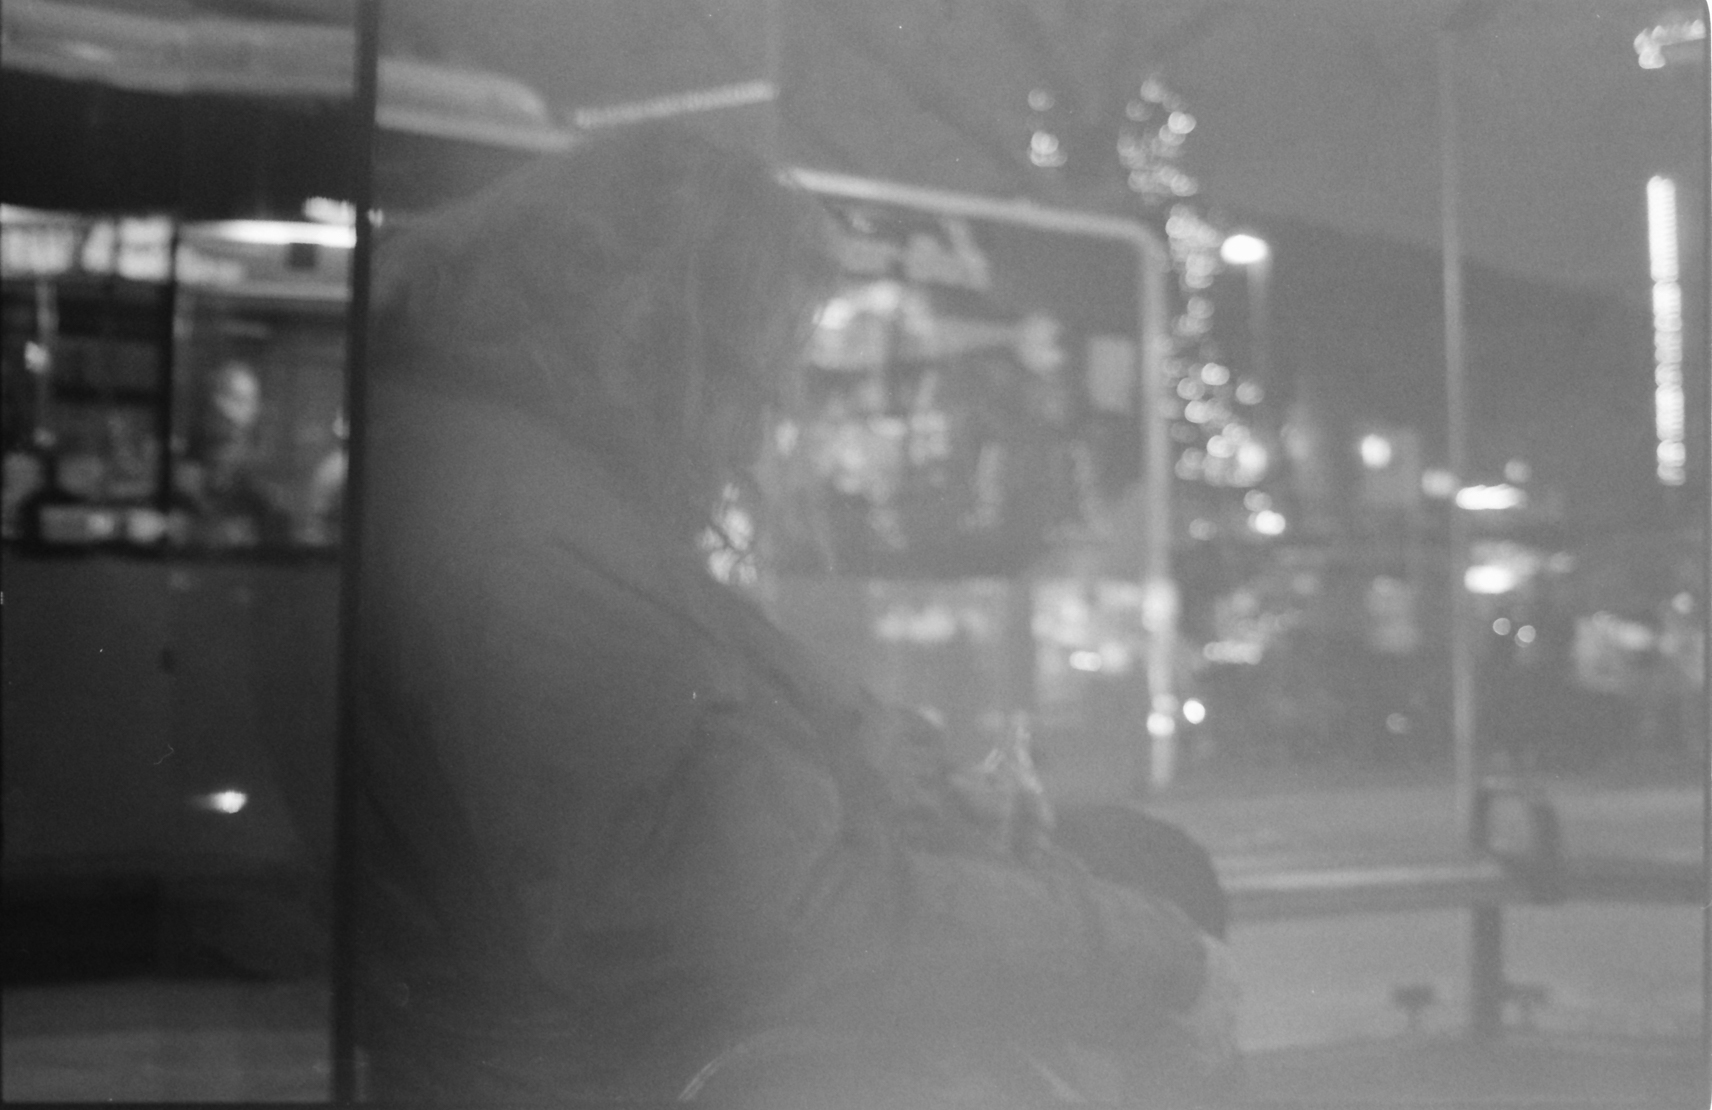 < Reflets > - Film: ilford delta 400 - Nikon F4s - Heidelberg, Germany